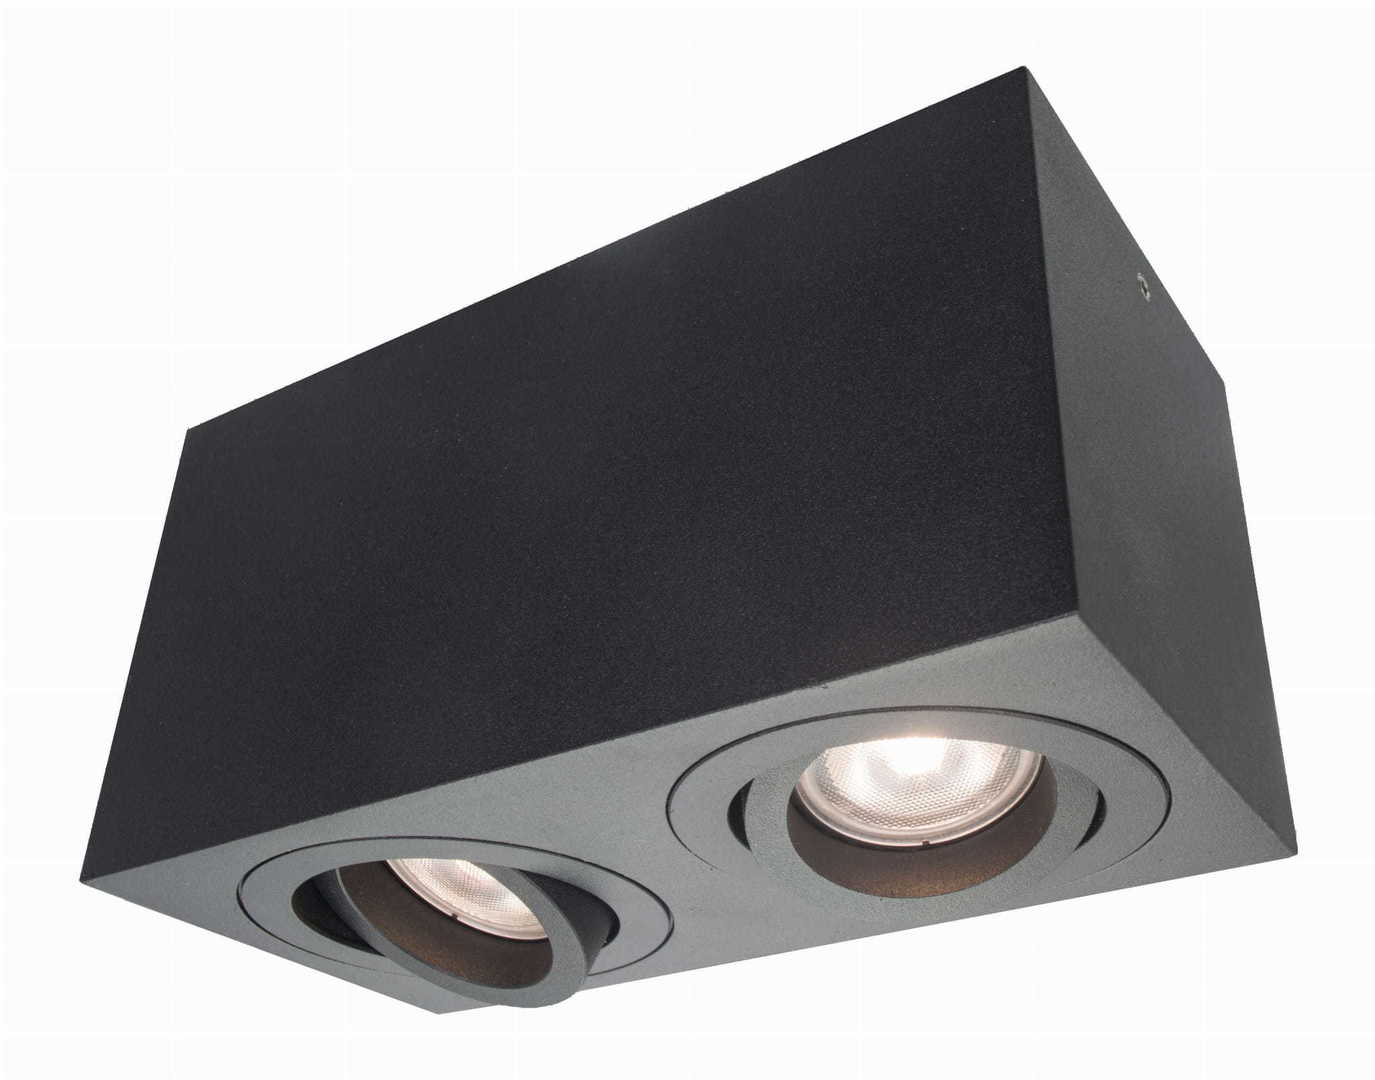 Lyon 2 surface mounted black